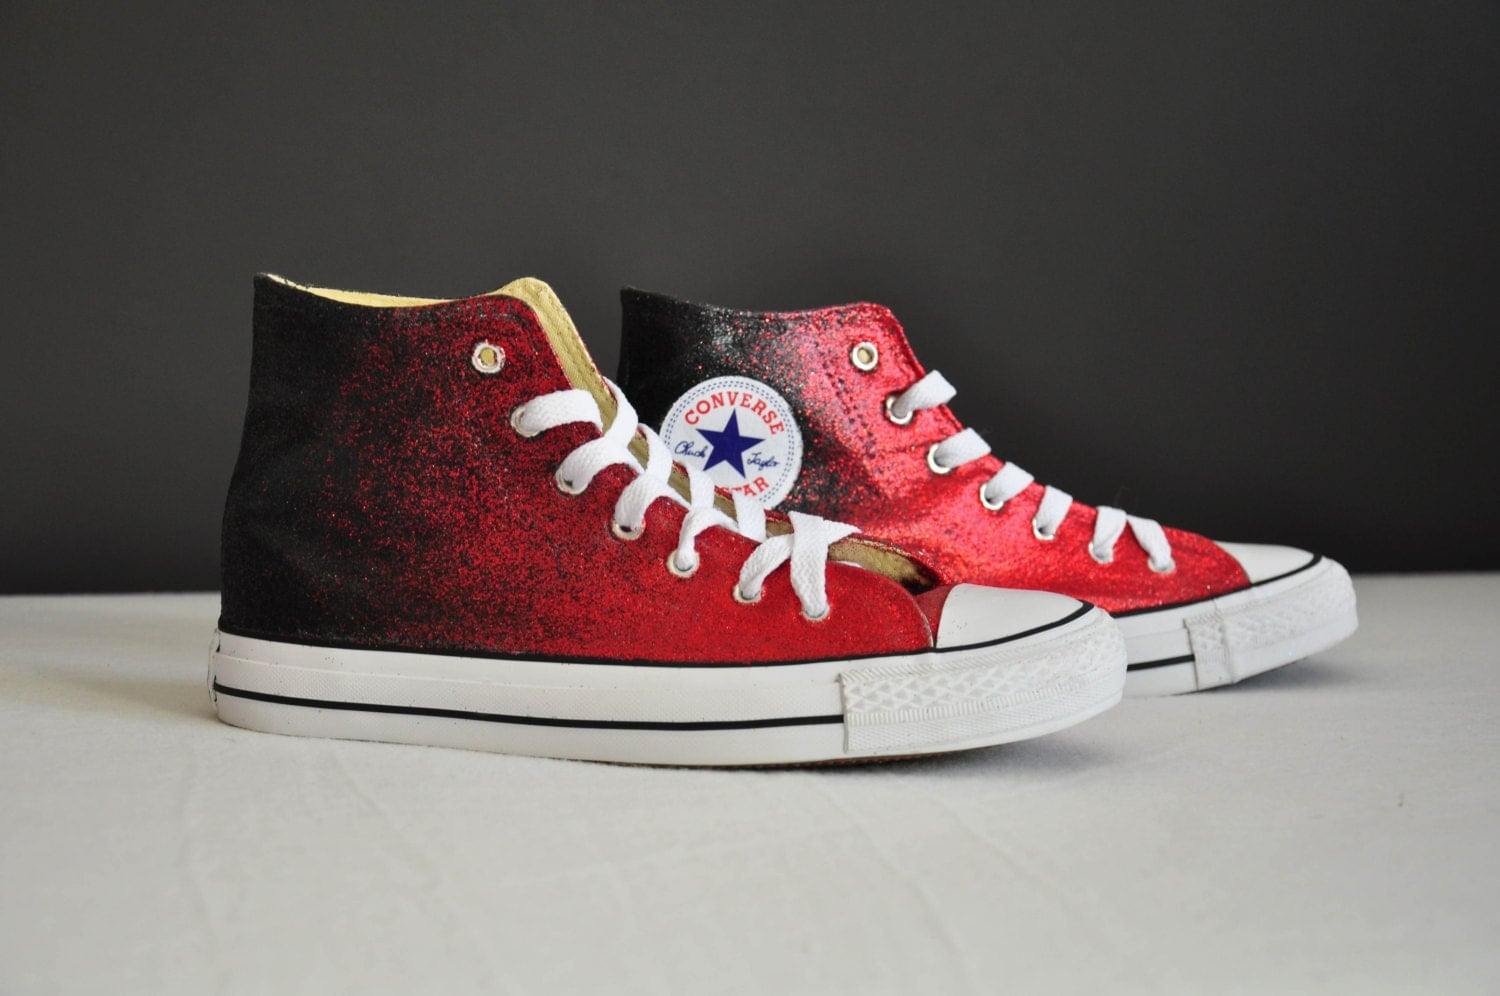 Converse shoes black and red